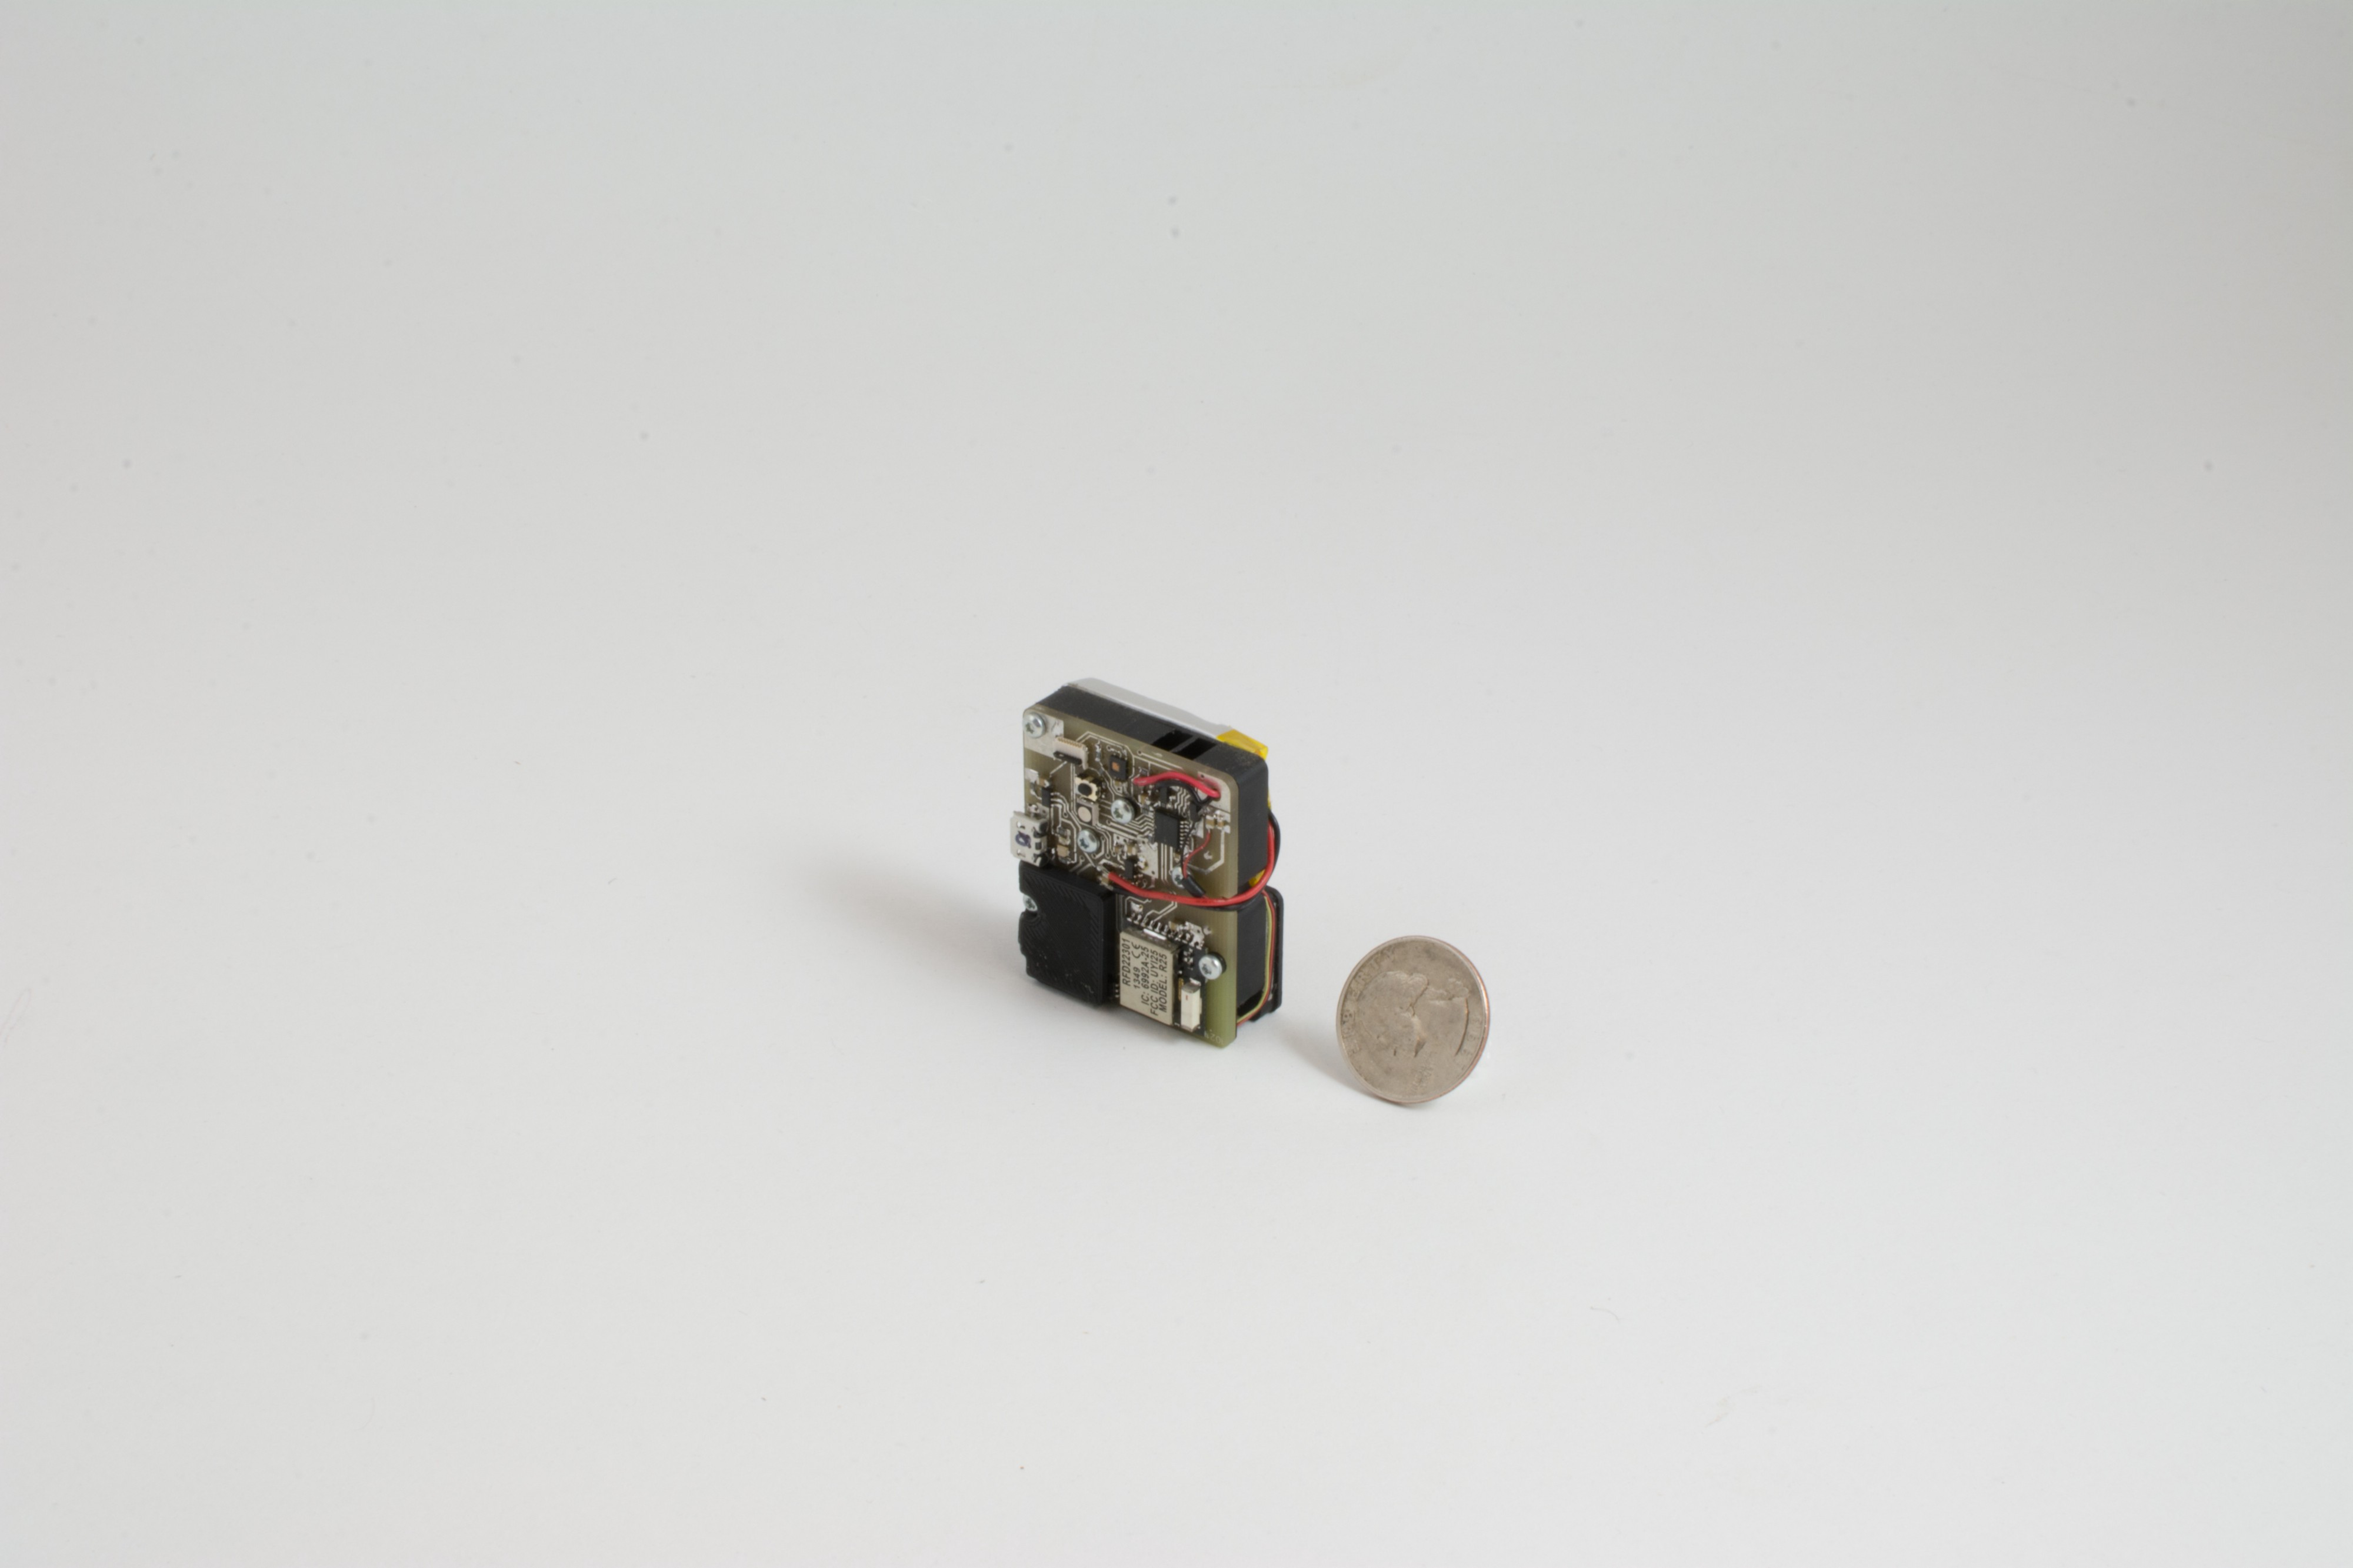 An Open-Source, Low-Cost Personal Airborne Particle Counter